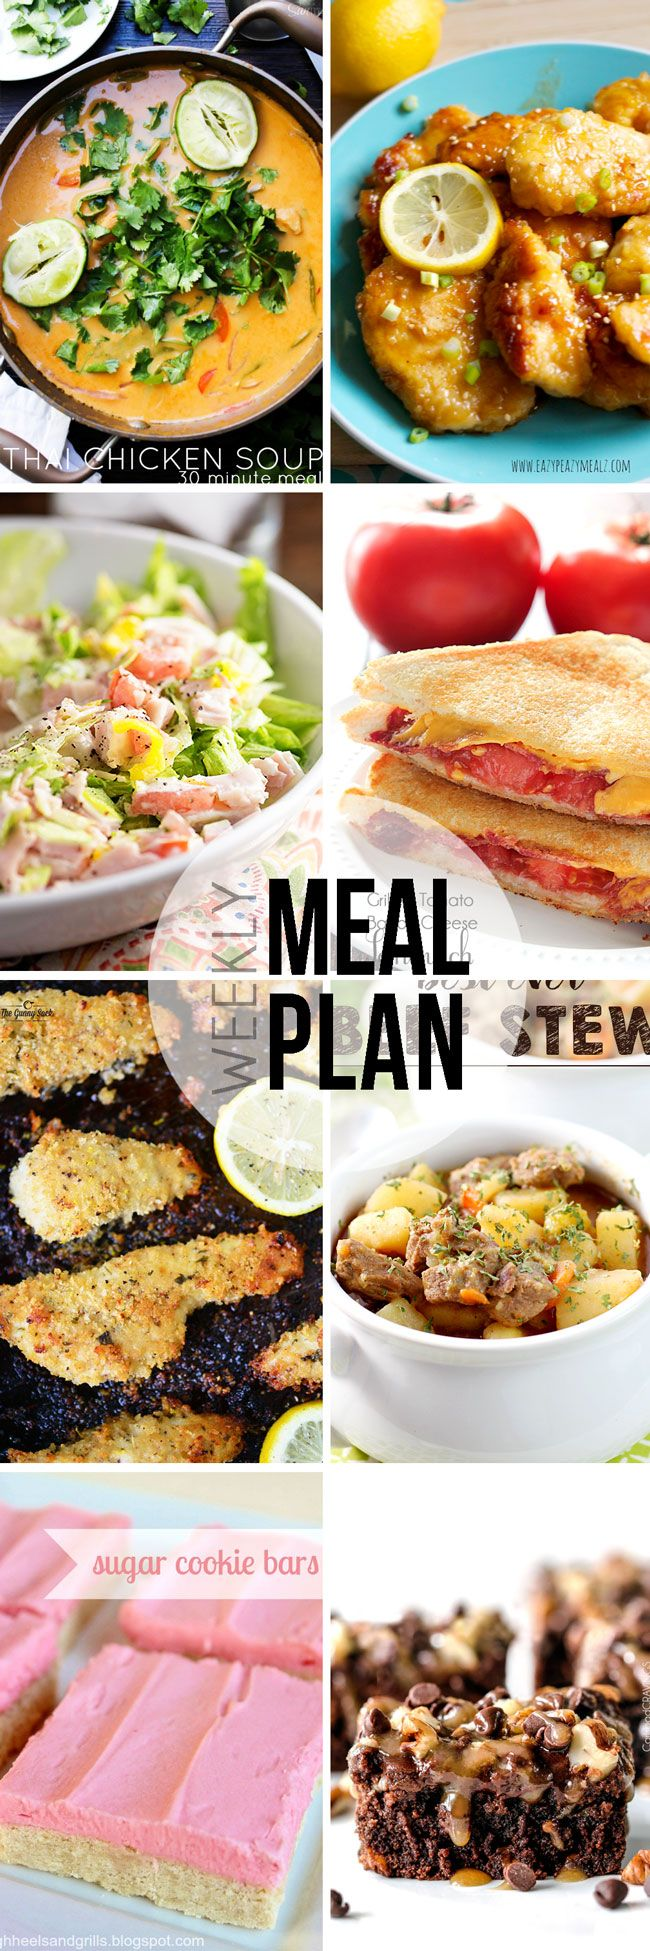 Easy Meal Plan Sunday #30 - Here are six fantastic main dishes and two delicious dessert recipes that your family will love.